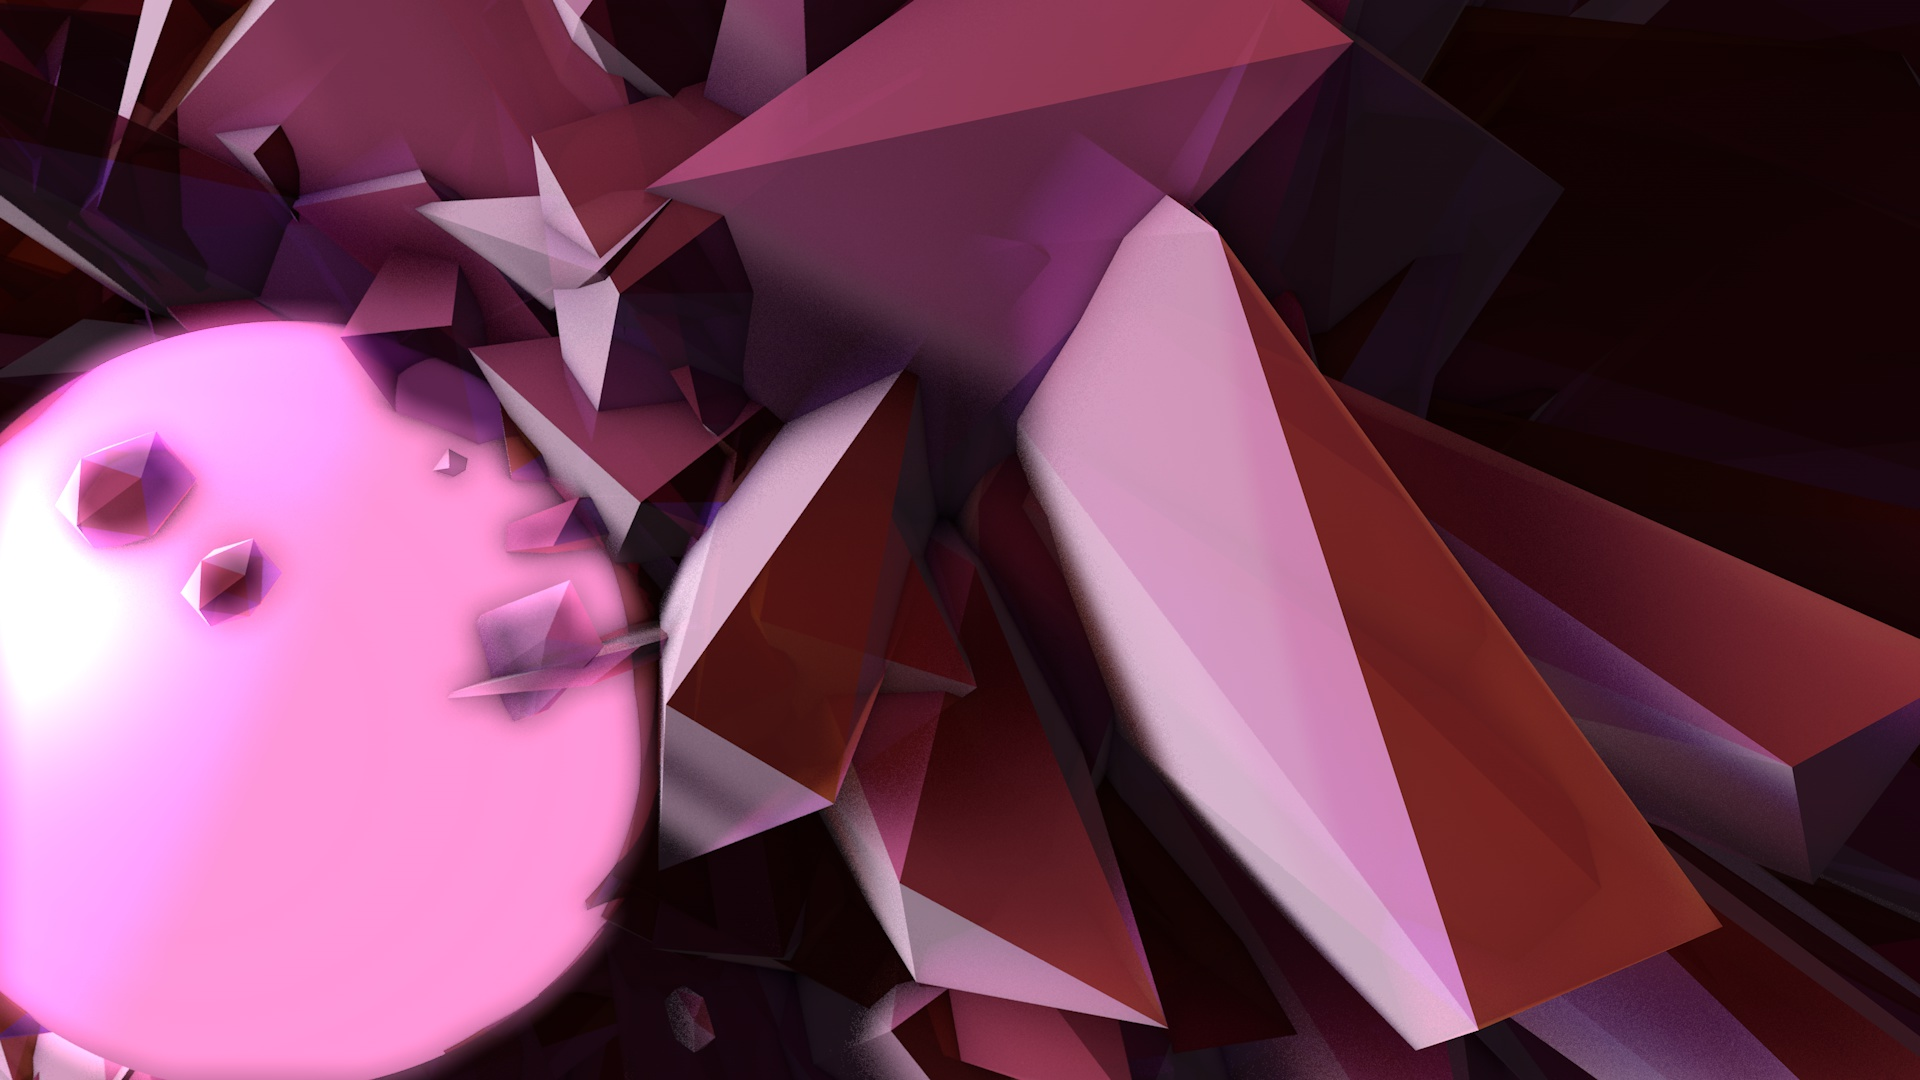 ABSTRACT SPHERE CRYSTAL 7 part 2.jpg